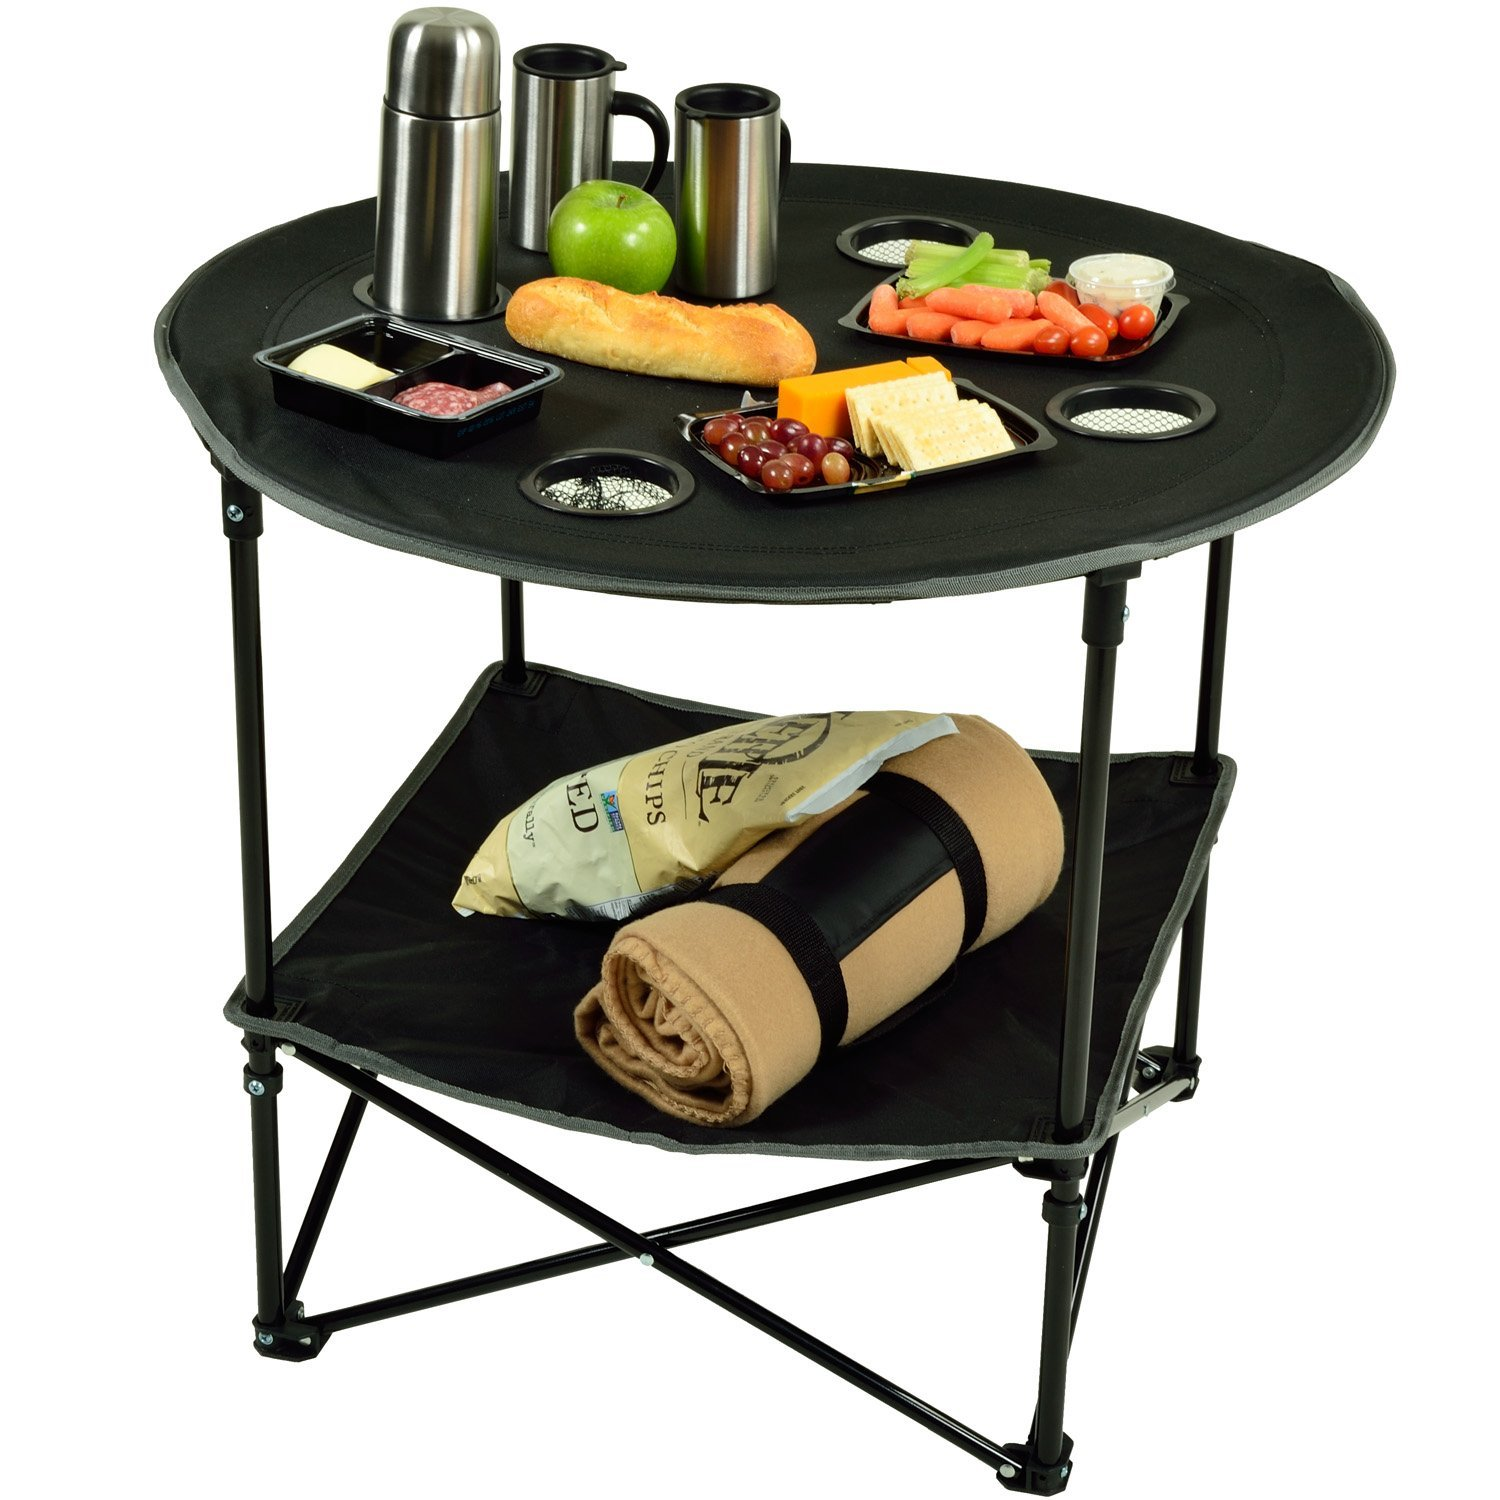 Folding Picnic Table for camping and tailgating